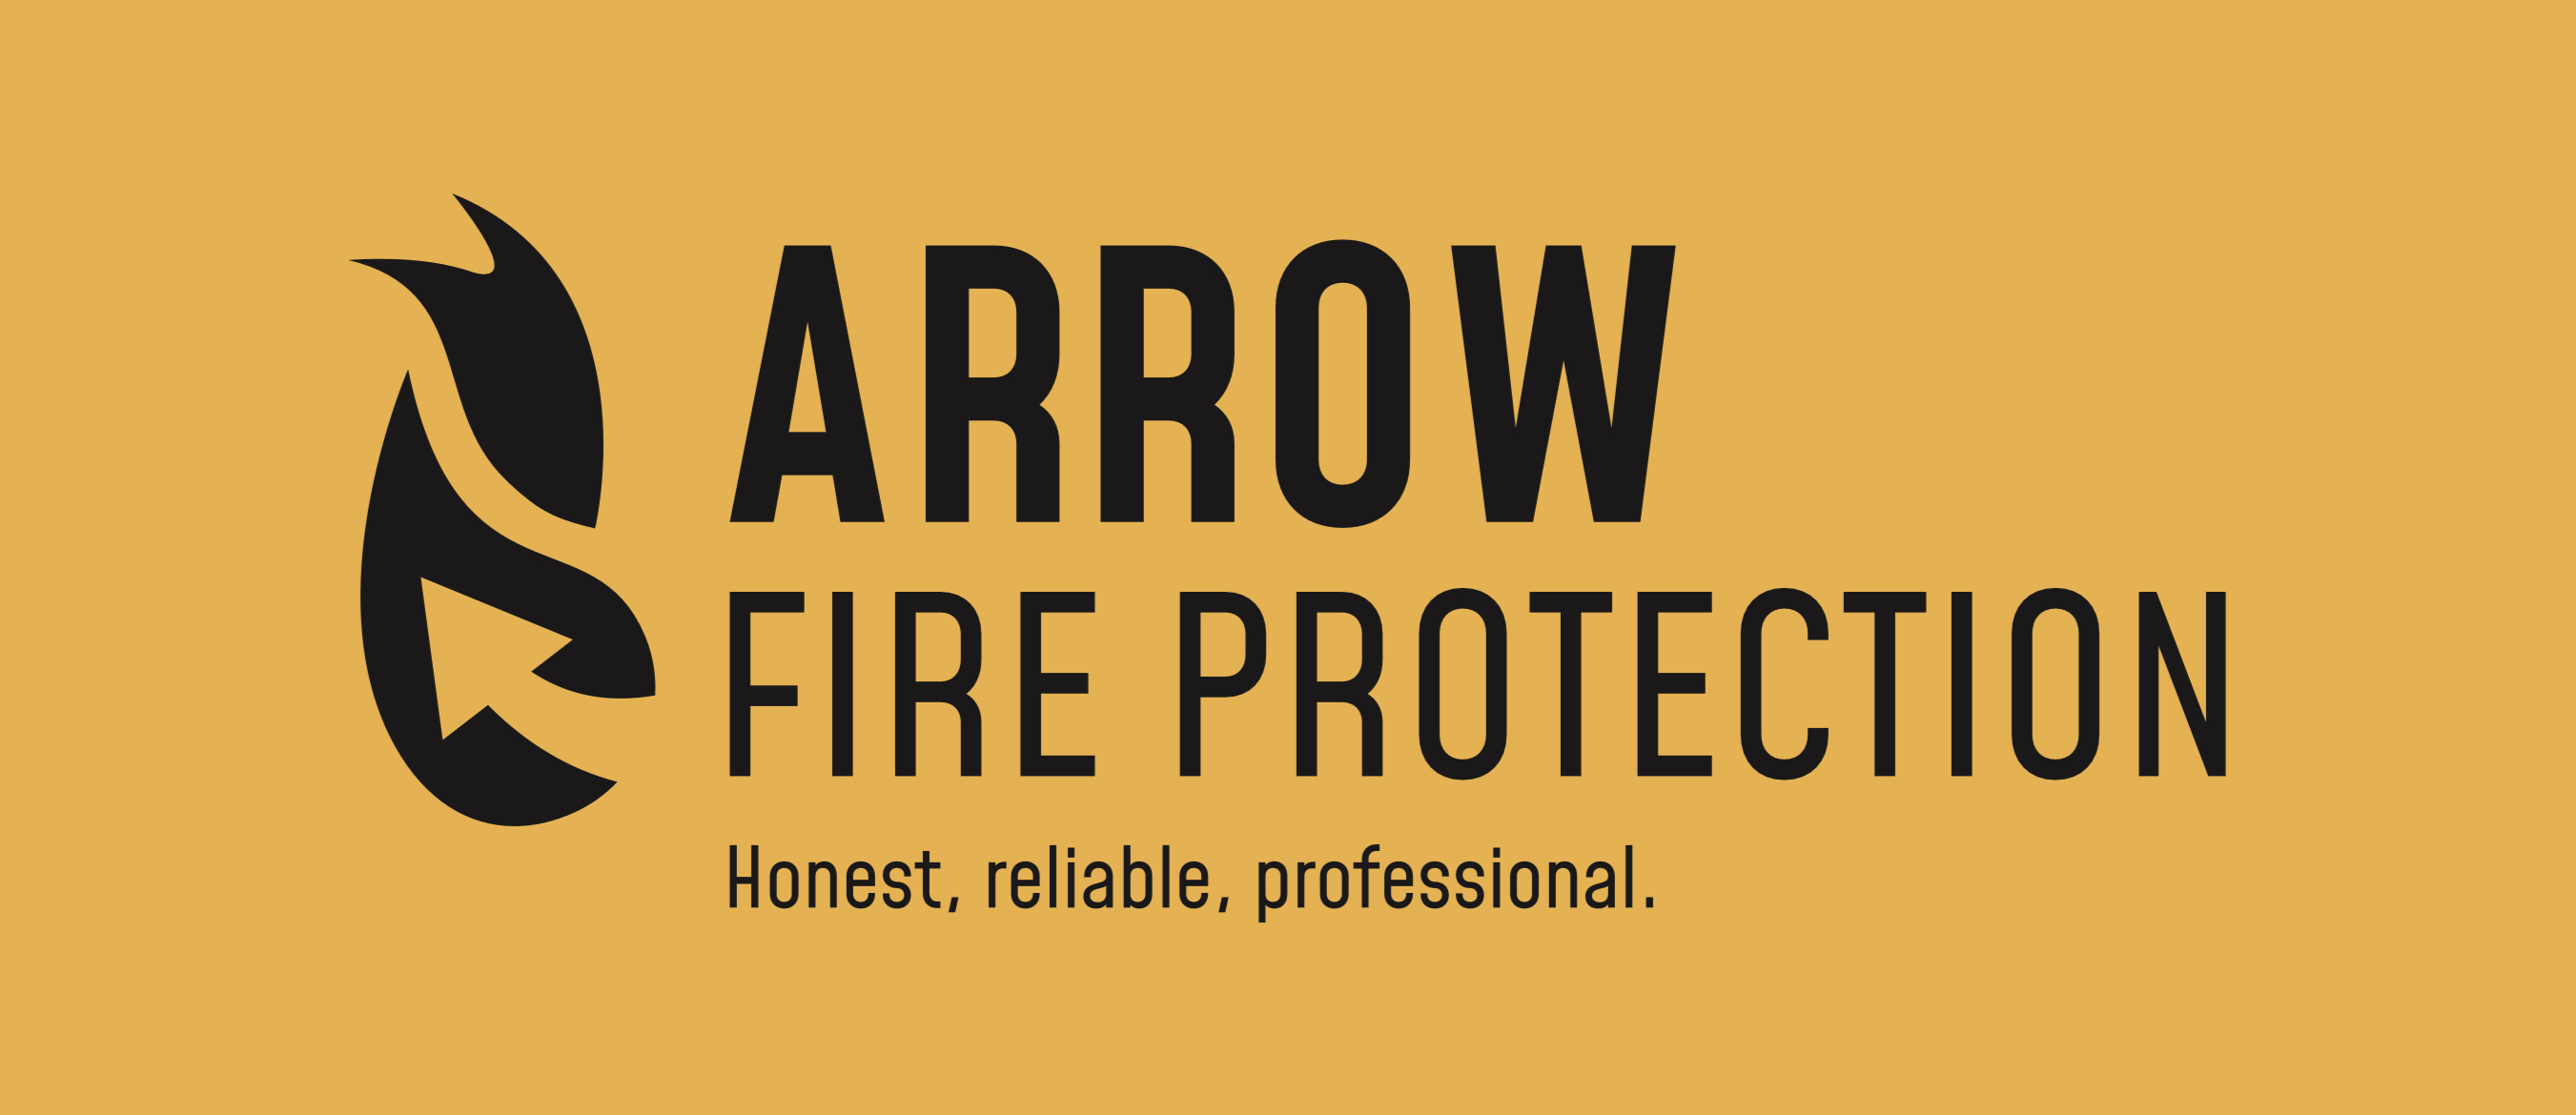 ARROW FIRE PROTECTION LTD